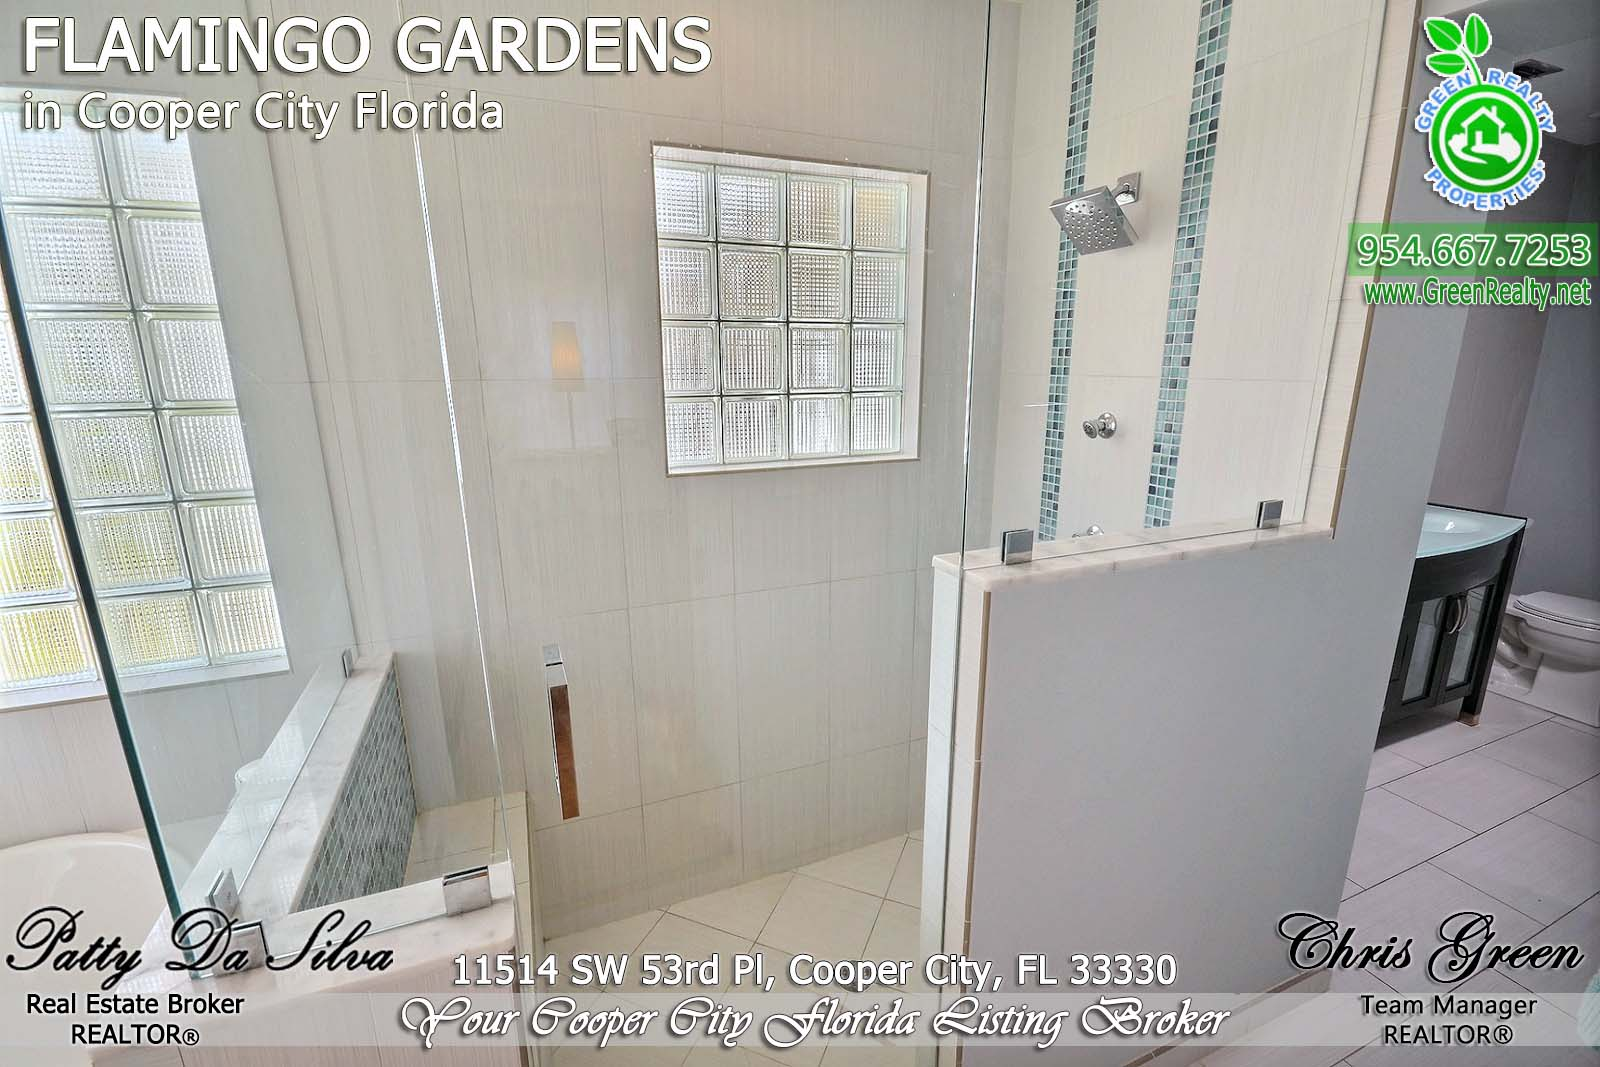 32 Flamingo Gardens Cooper City Homes For Sale (29)